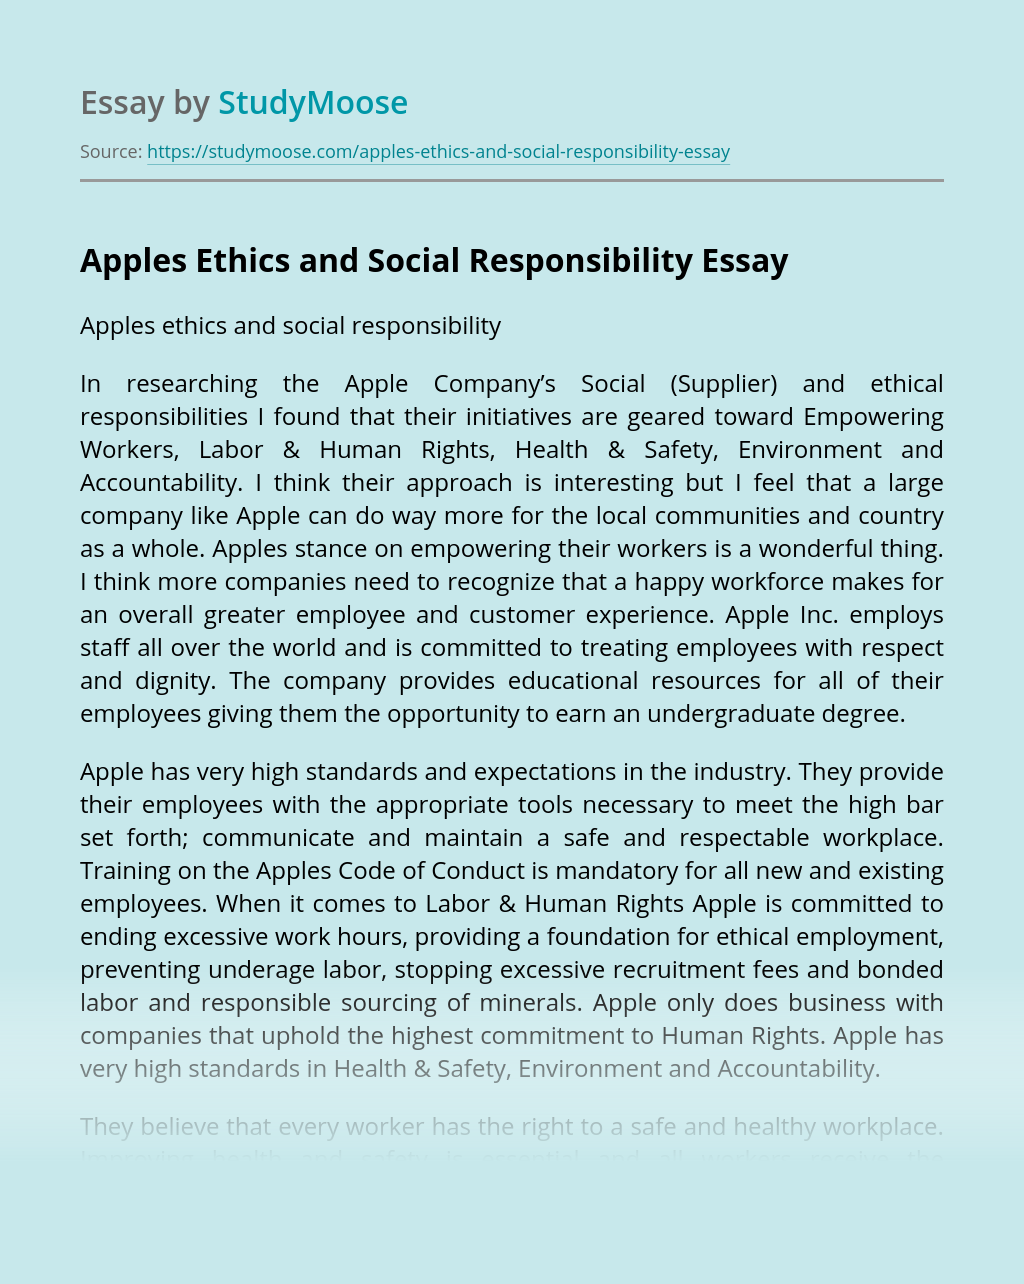 Apples Ethics and Social Responsibility